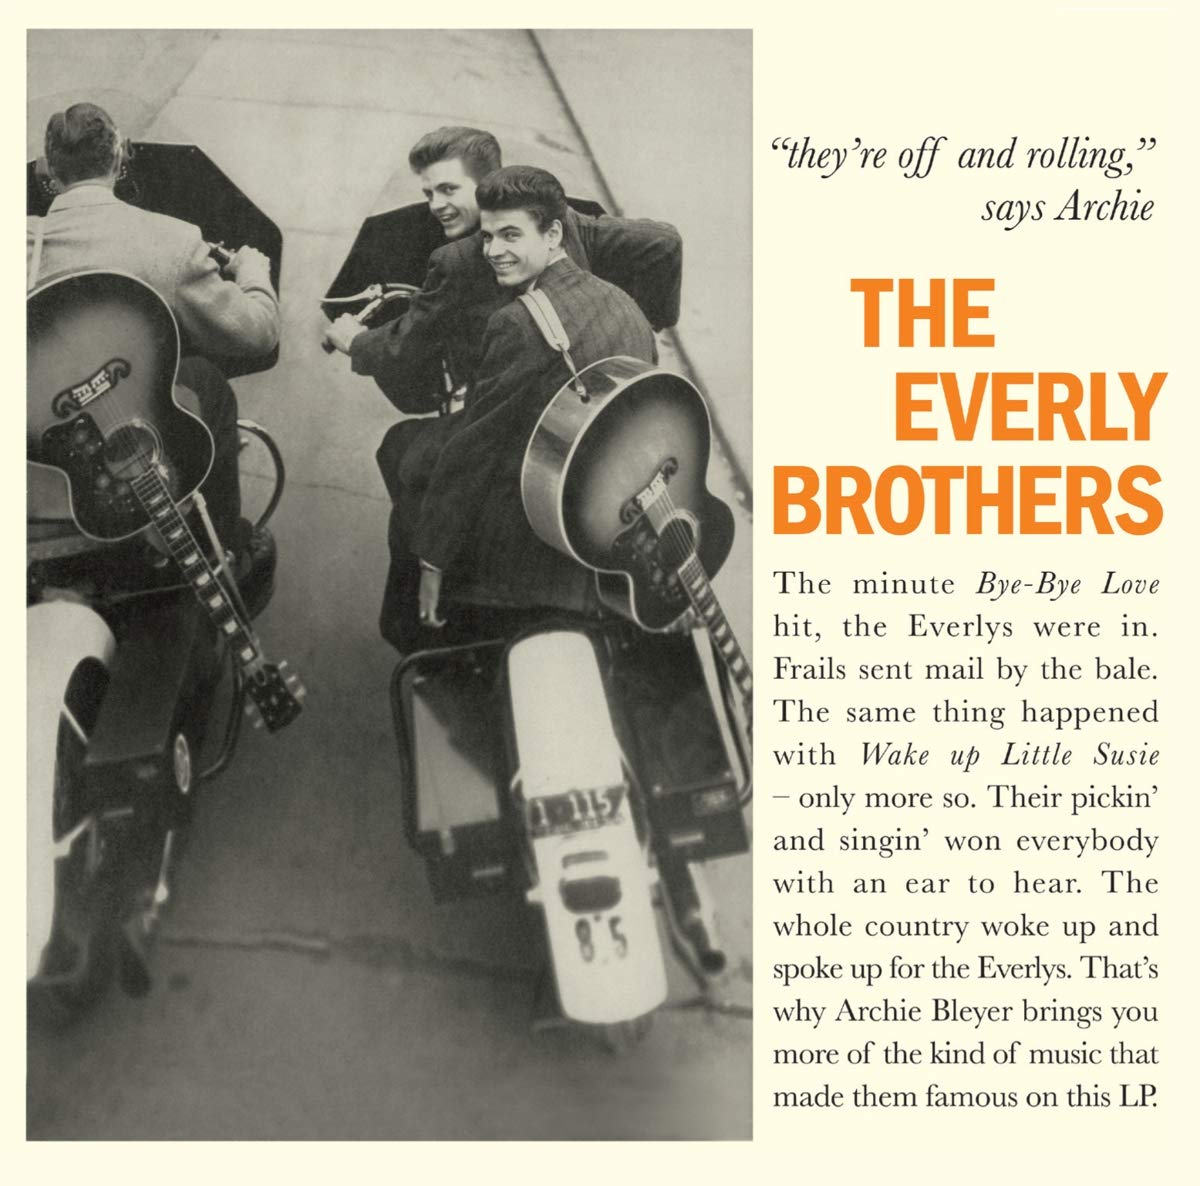 CD : The Everly Brothers - Everly Brothers /  It's Beverly Time (Bonus Tracks, Deluxe Edition, Mini LP Sleeve, Remastered, Spain - Import)